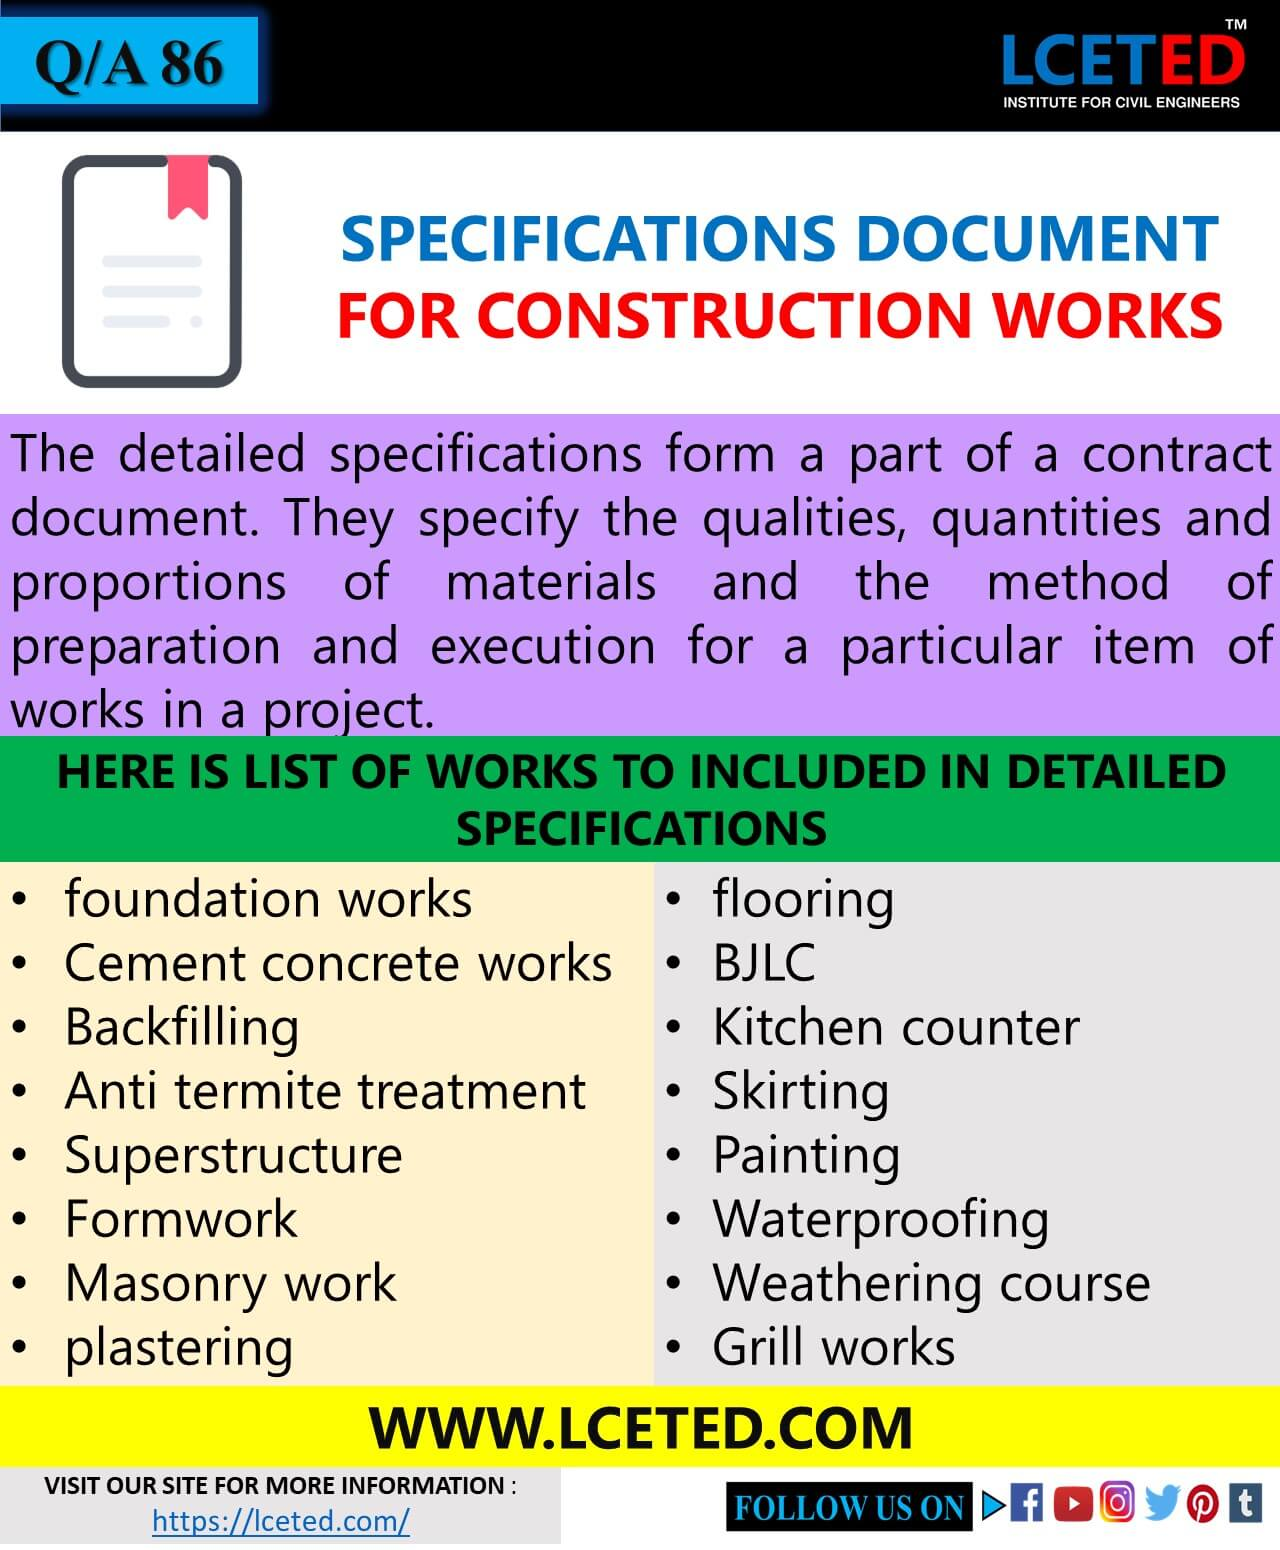 SPECIFICATIONS FOR CONSTRUCTION WORKS